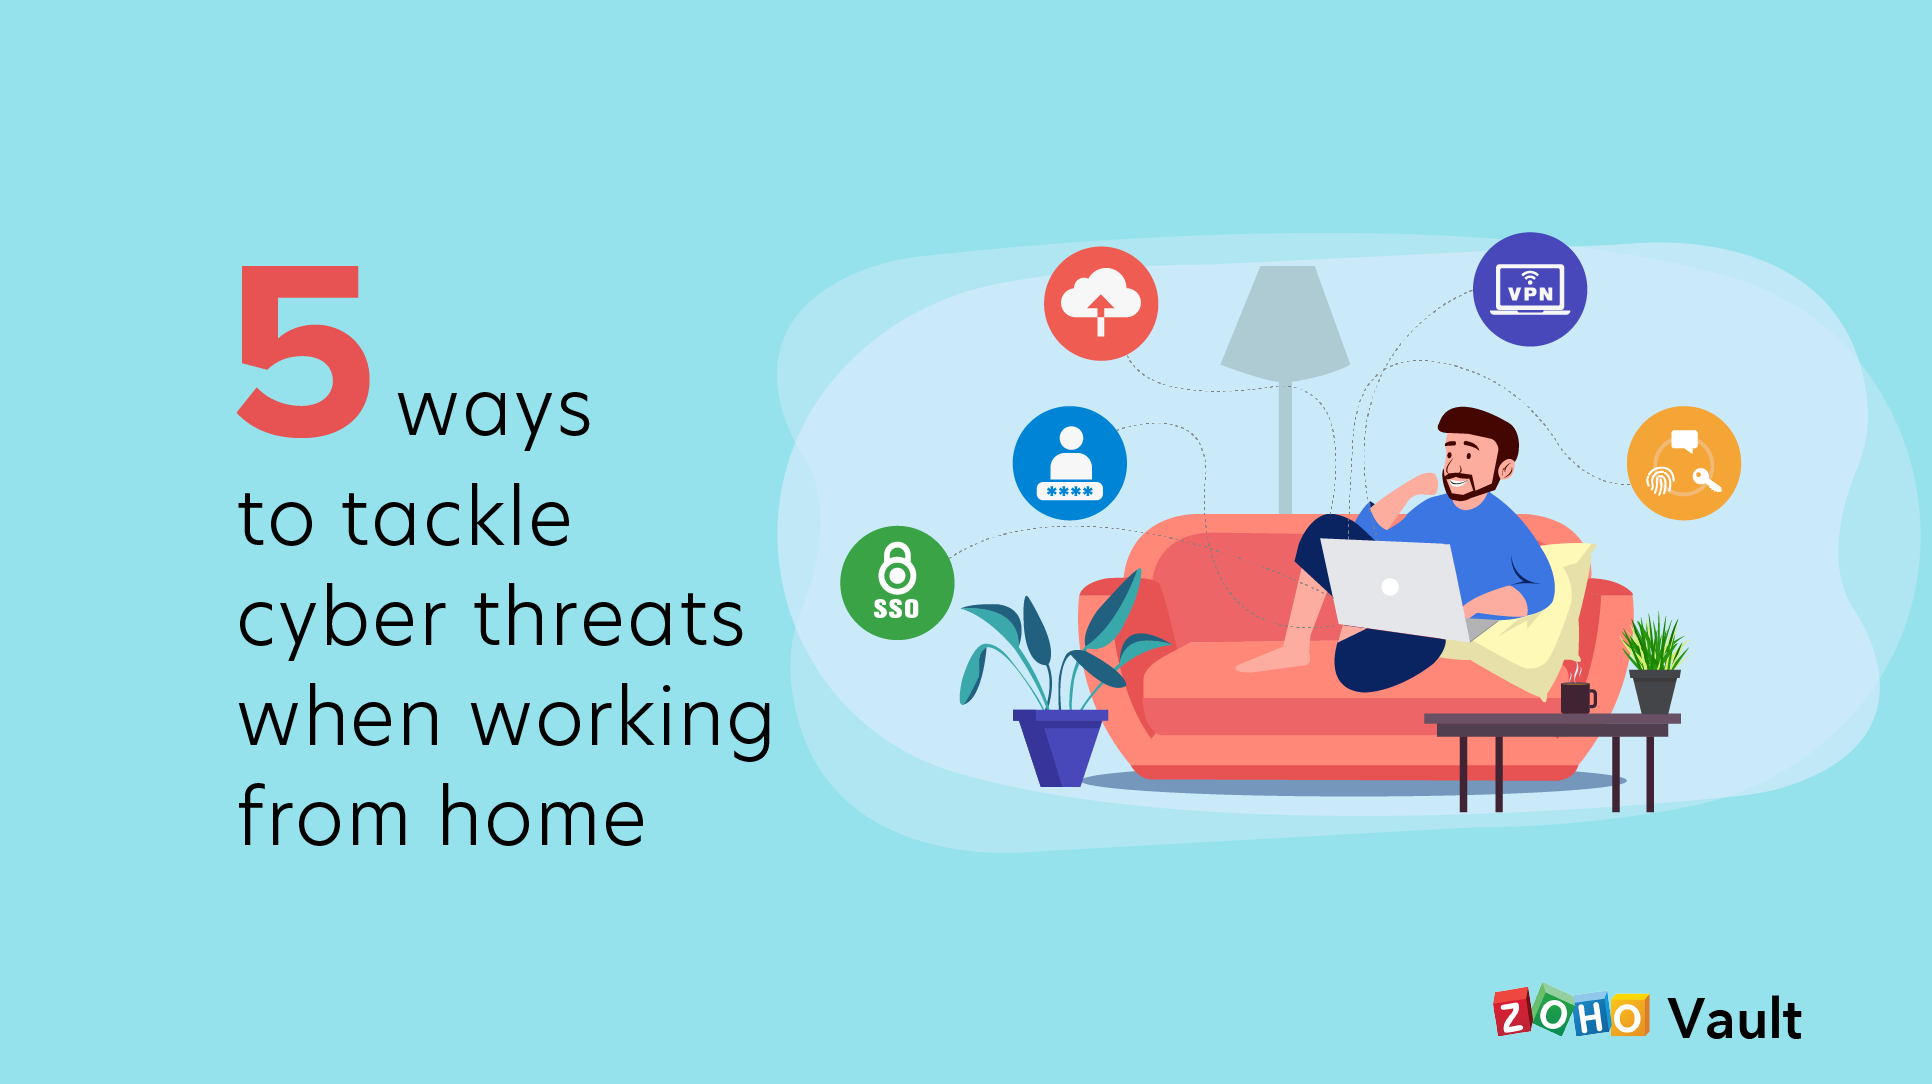 Remote work and cybersecurity